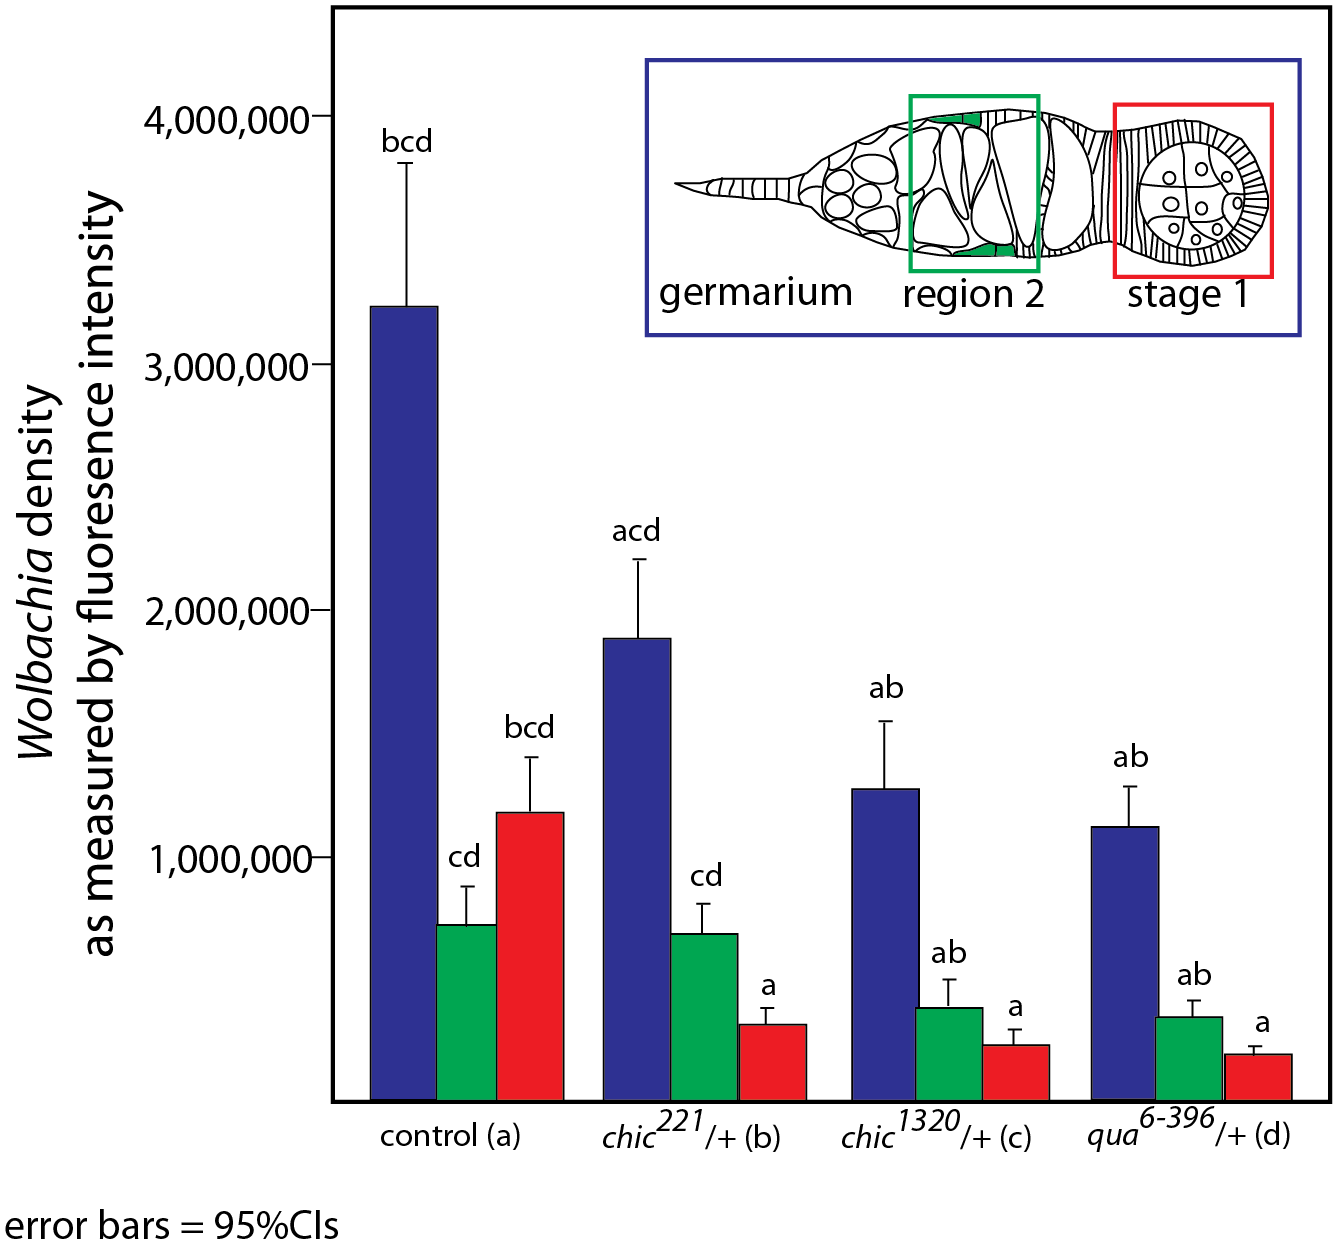 Quantification of reduction in <i>Wolbachia</i> titer during oogenesis, within the entire germarium (in blue), region 2, including the somatic stem cell niche (SSCN, green) and early egg chambers (stage 1, red).